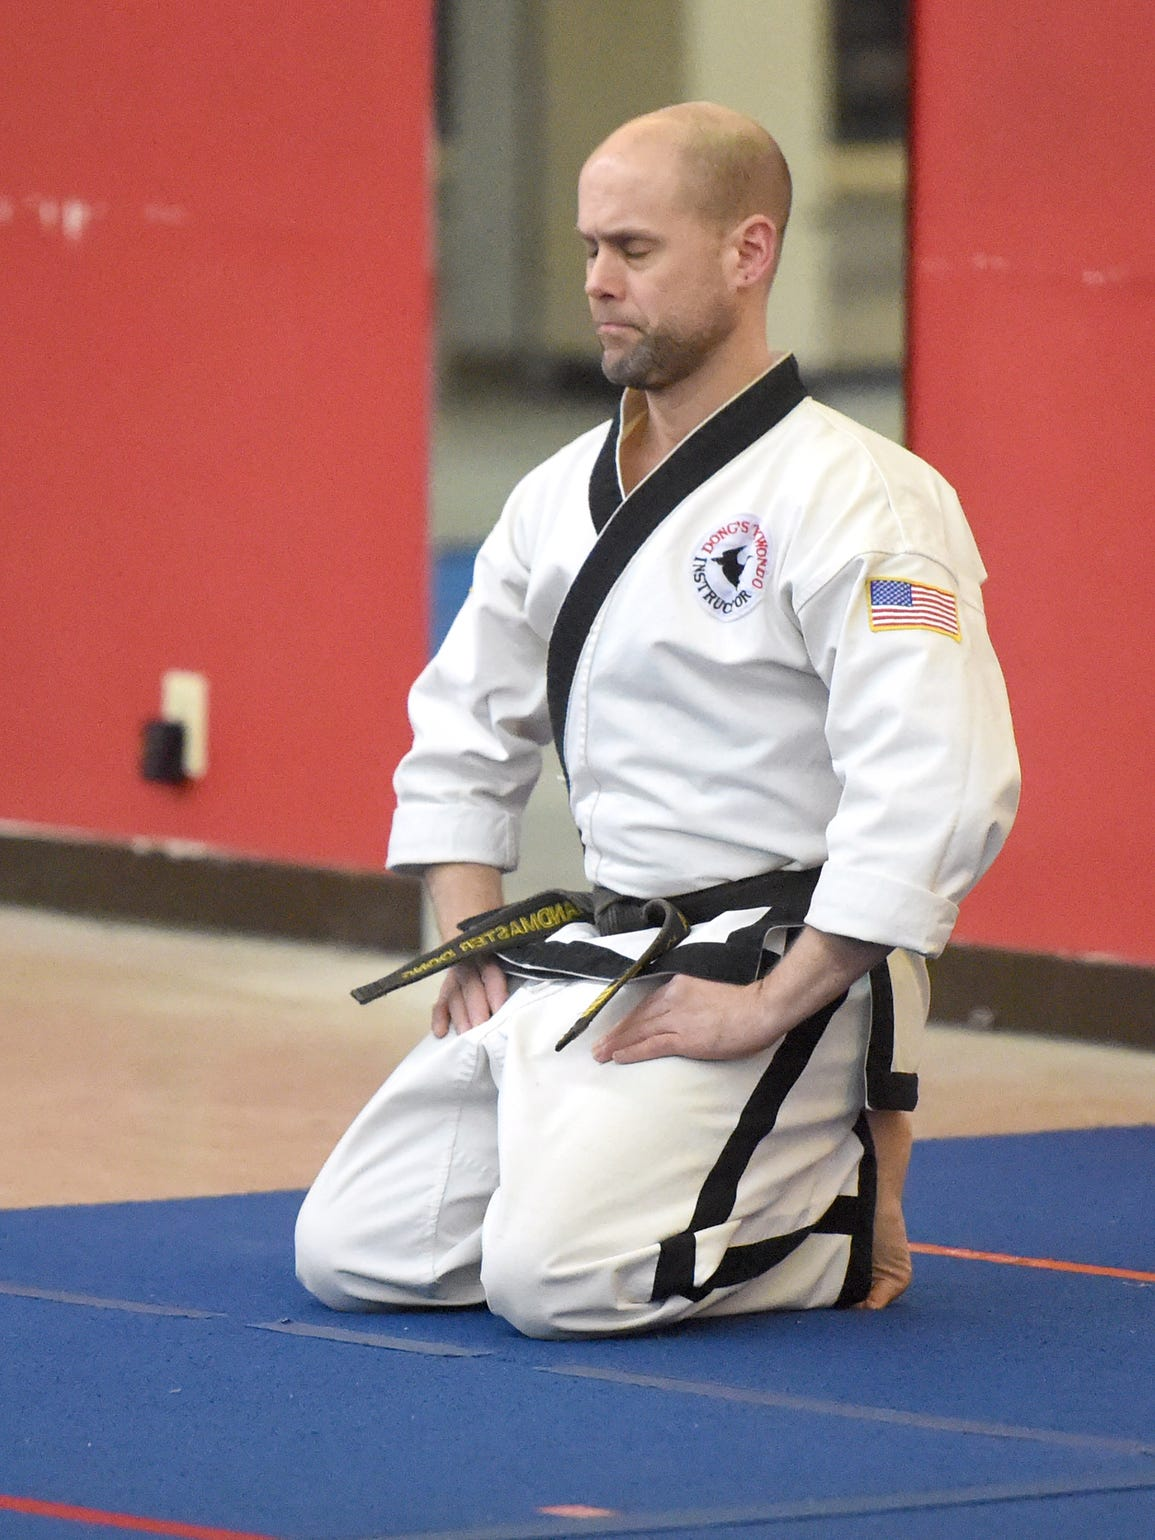 Master Dan Napier, a 5th degree black belt in Tae Kwon